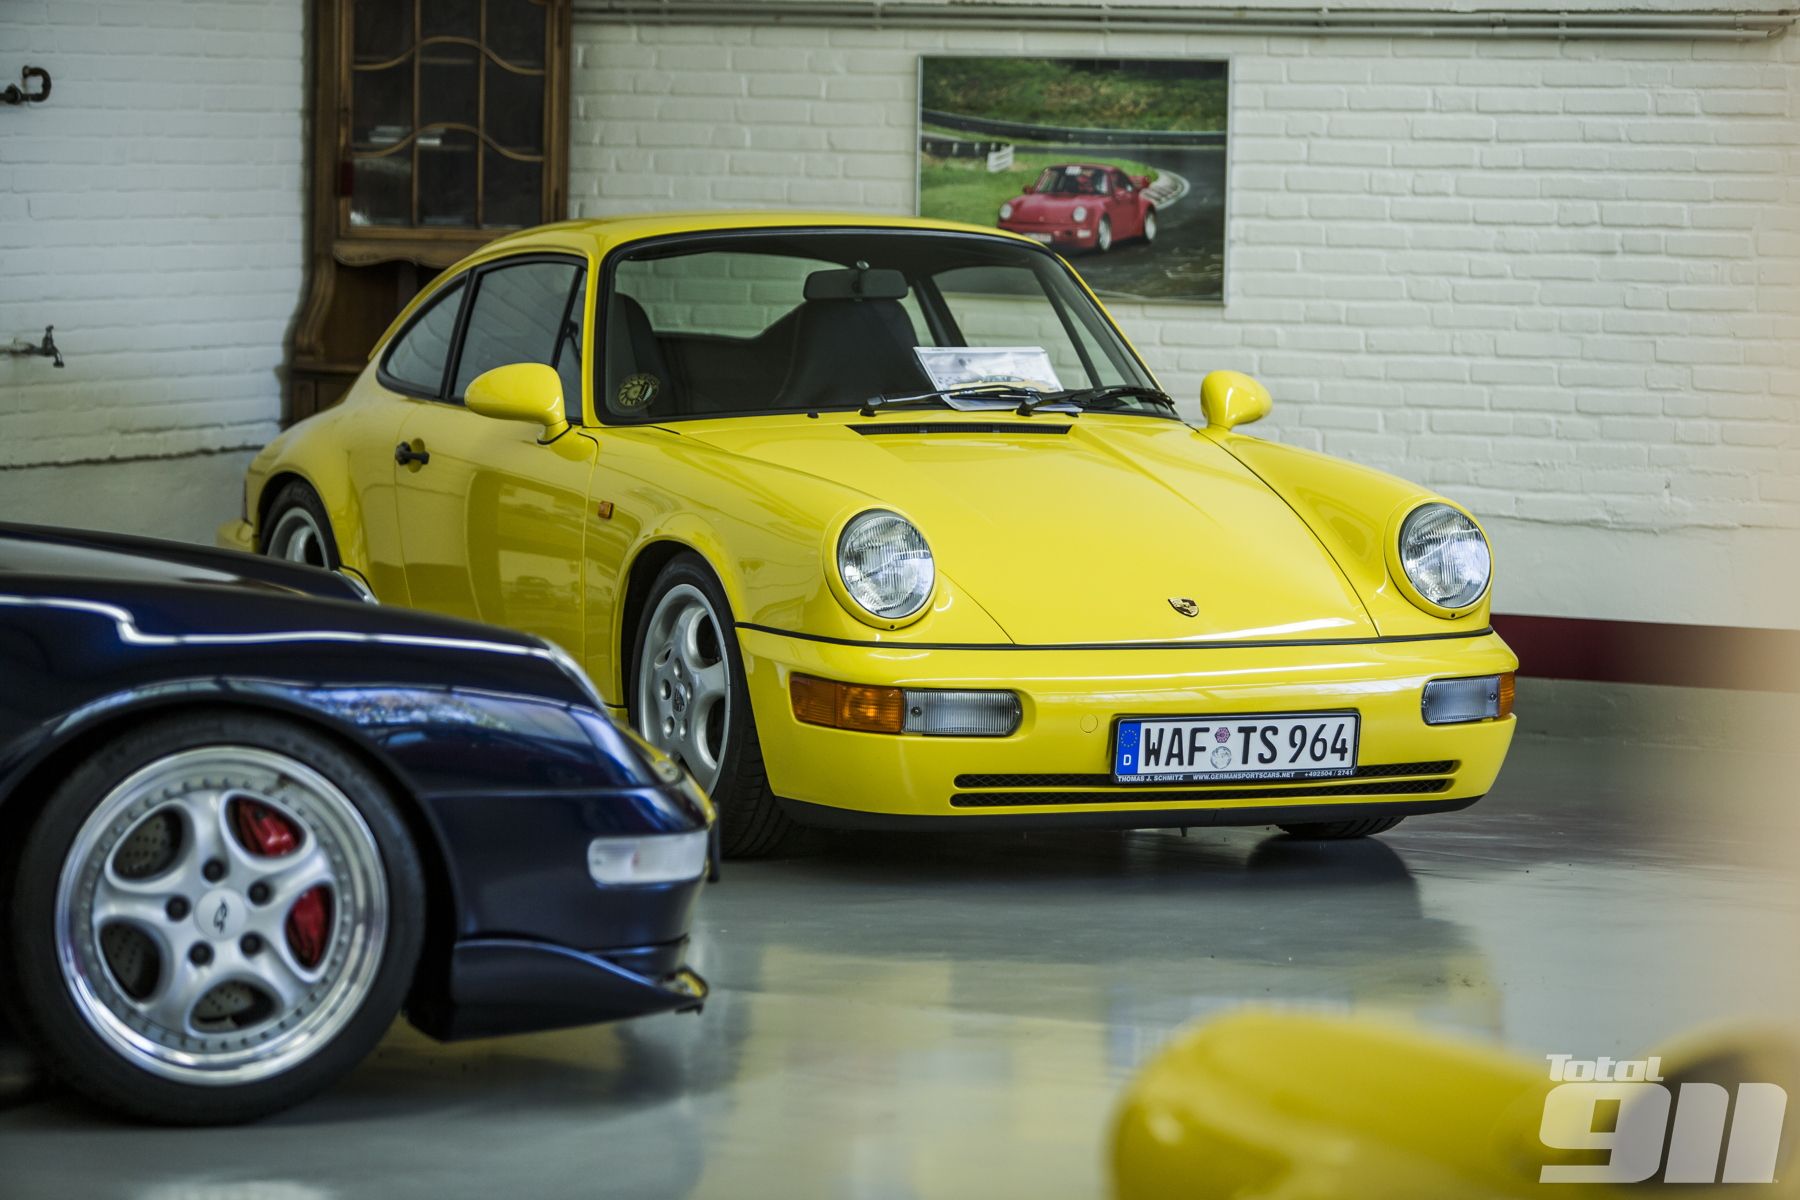 Go behind the scenes at Thomas Schmitz's German Sports Cars as we meet the man known as 'Mr RS'.